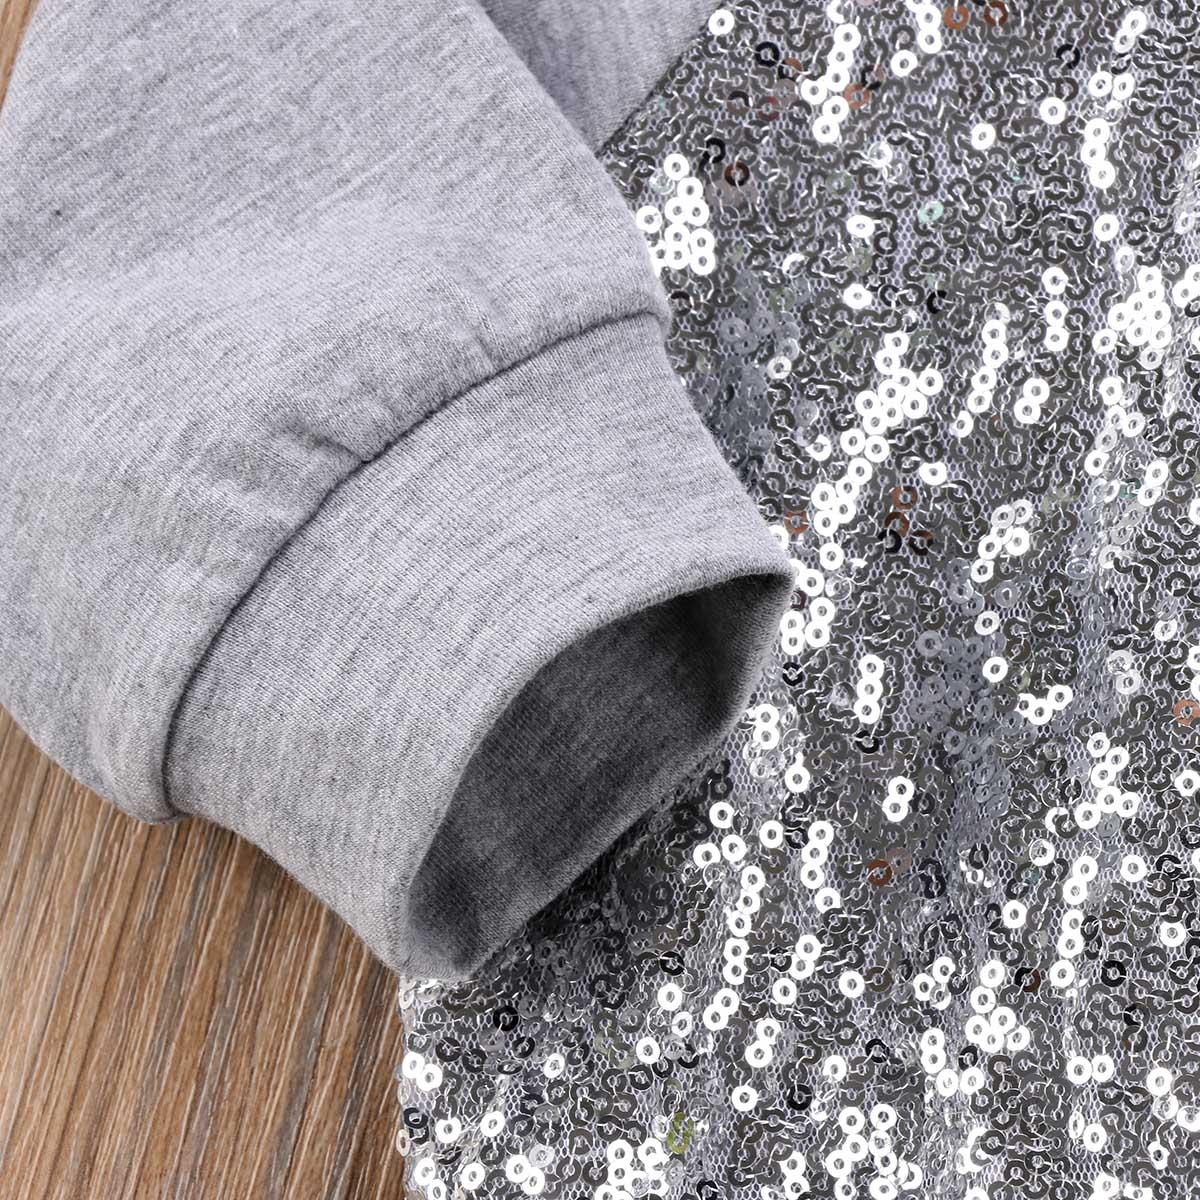 Family Matching Outfits Women Newborn Baby Girl Sequin Sparkle Top T-shirt Sweatshirt Clothes